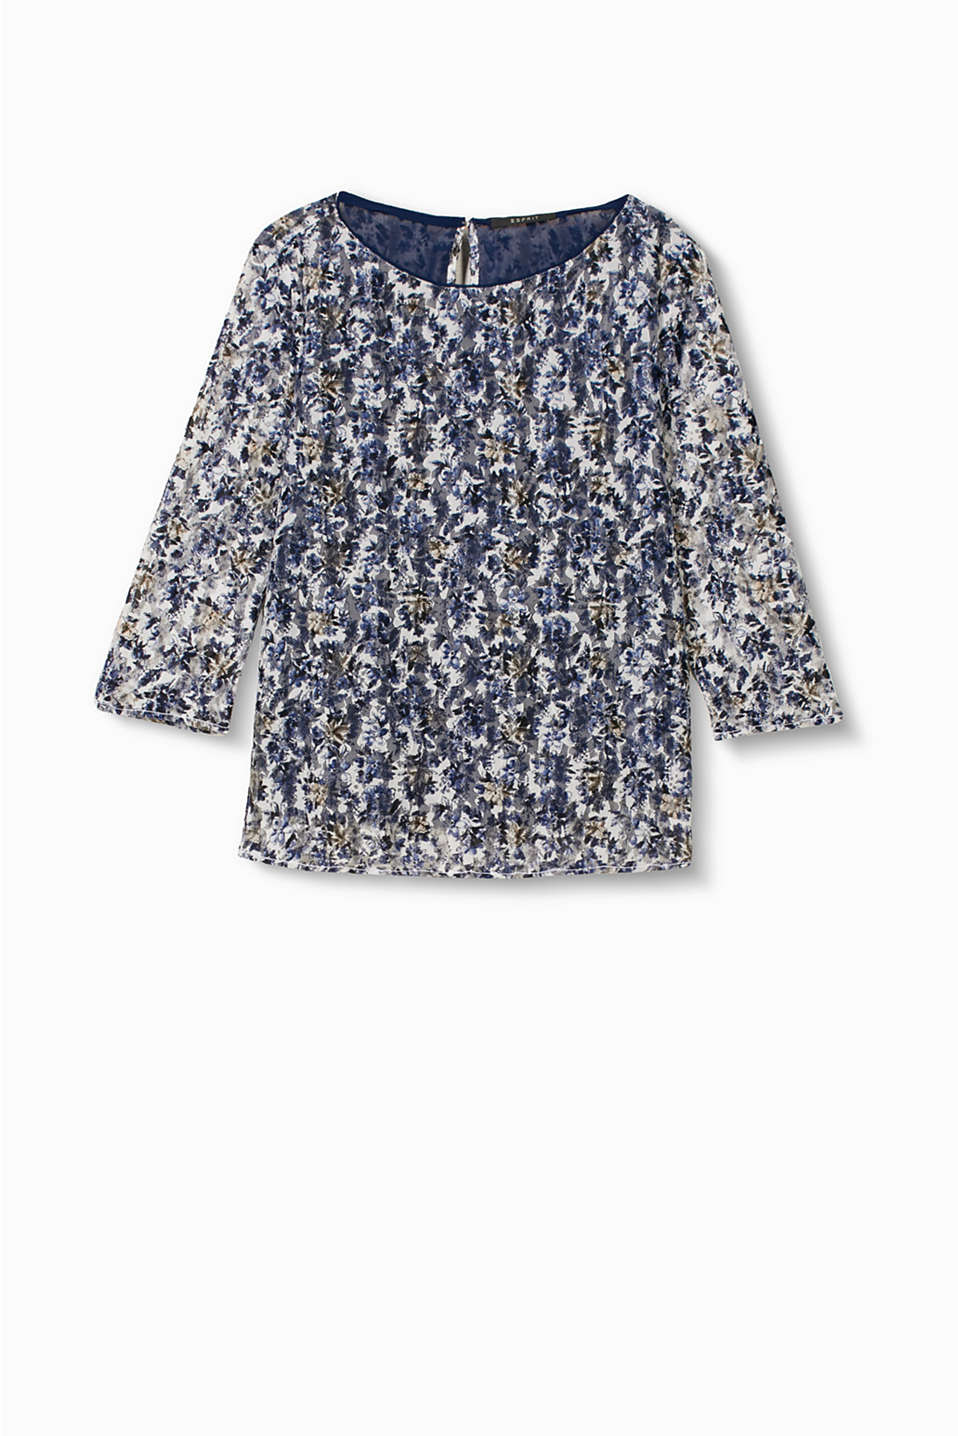 Light and airy blouse in floral, printed lace with georgette lining